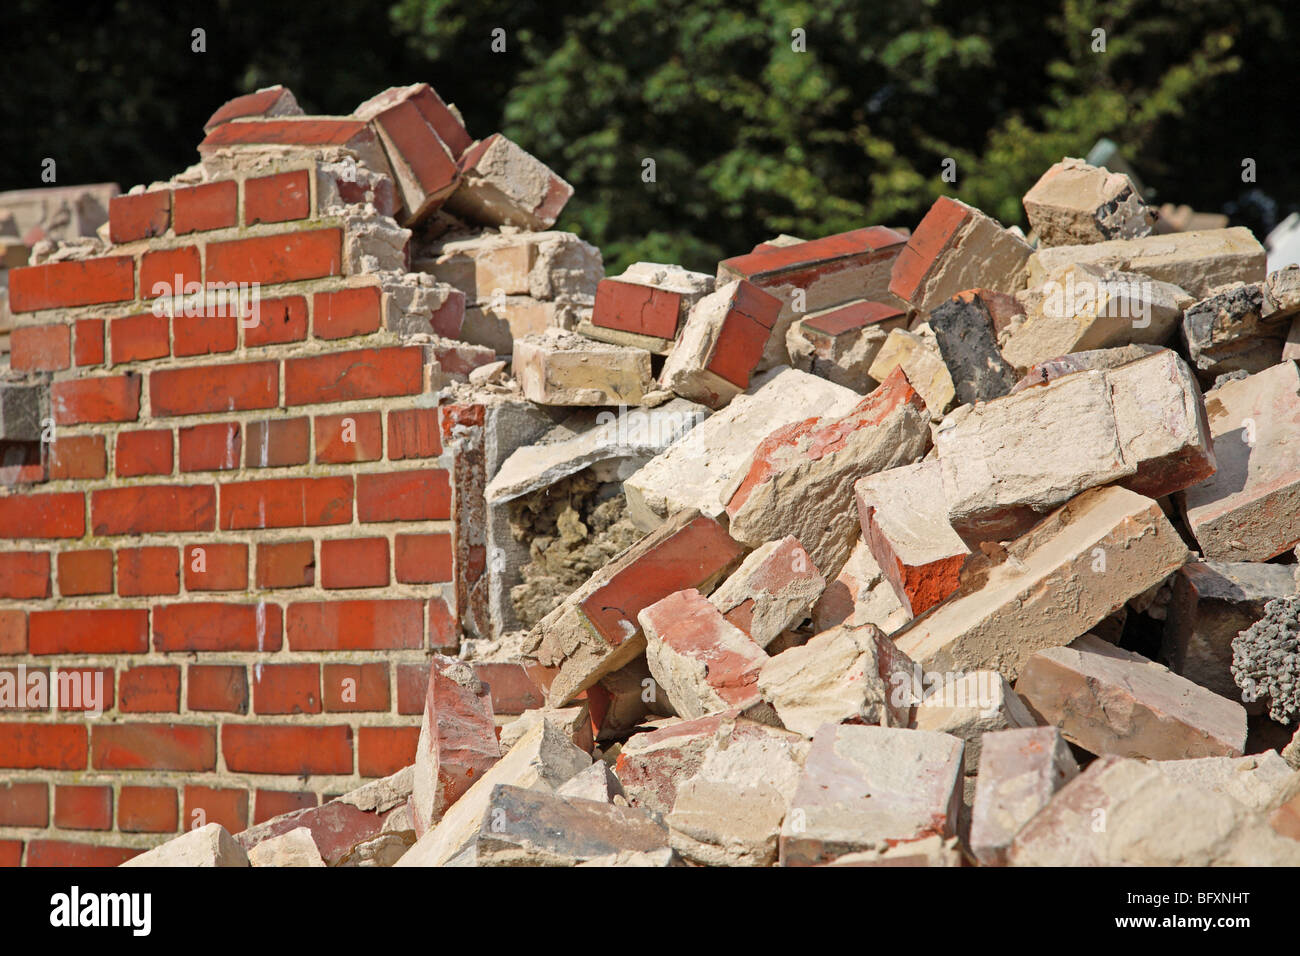 Demolition of a red brick wall. - Stock Image